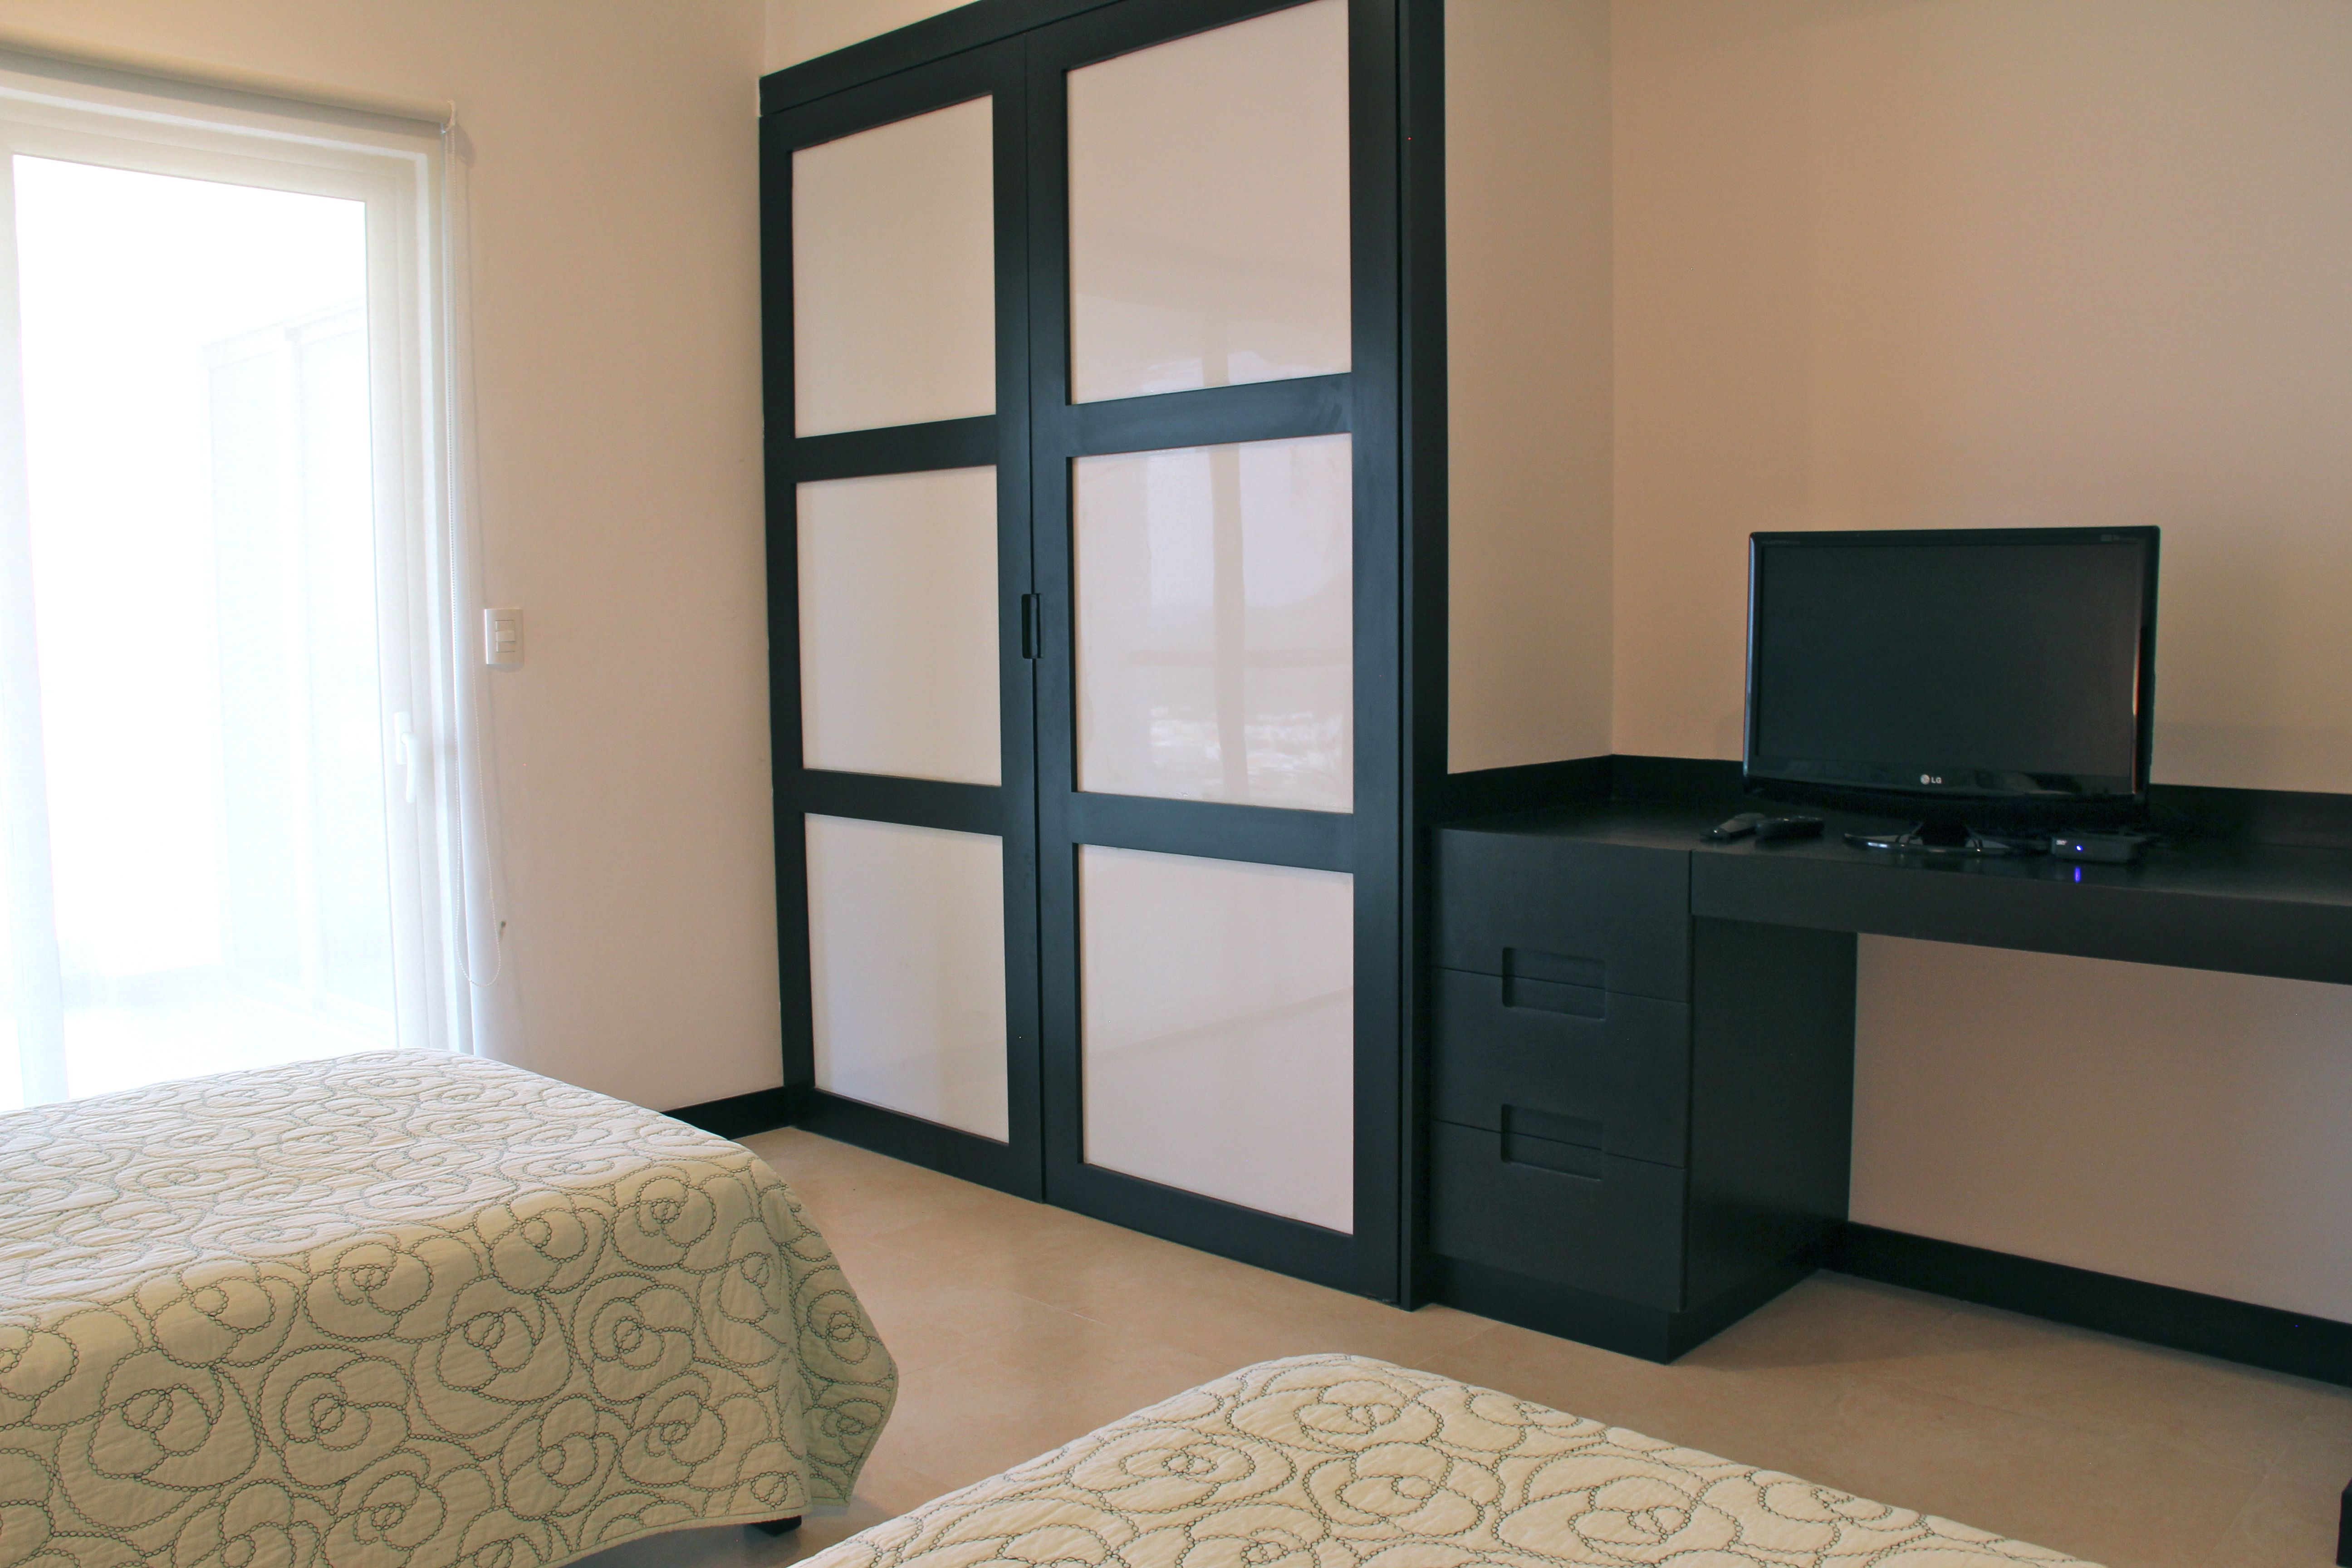 Closets and TV in second bedroom.